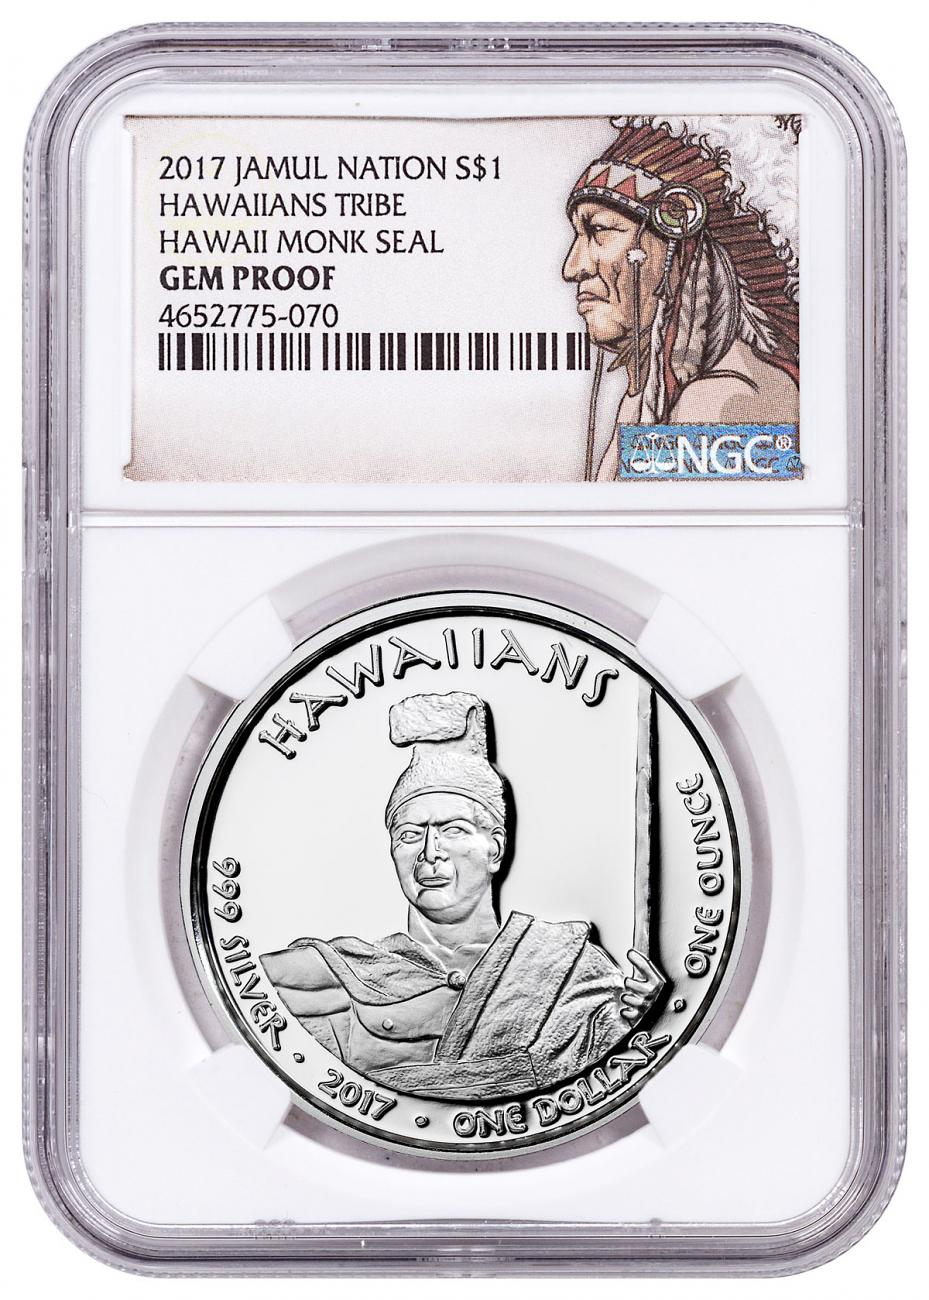 2017 Native American Silver Dollar - Hawaiian Indians - Monk Seal 1 oz Silver Proof Coin NGC GEM Proof Native American Label